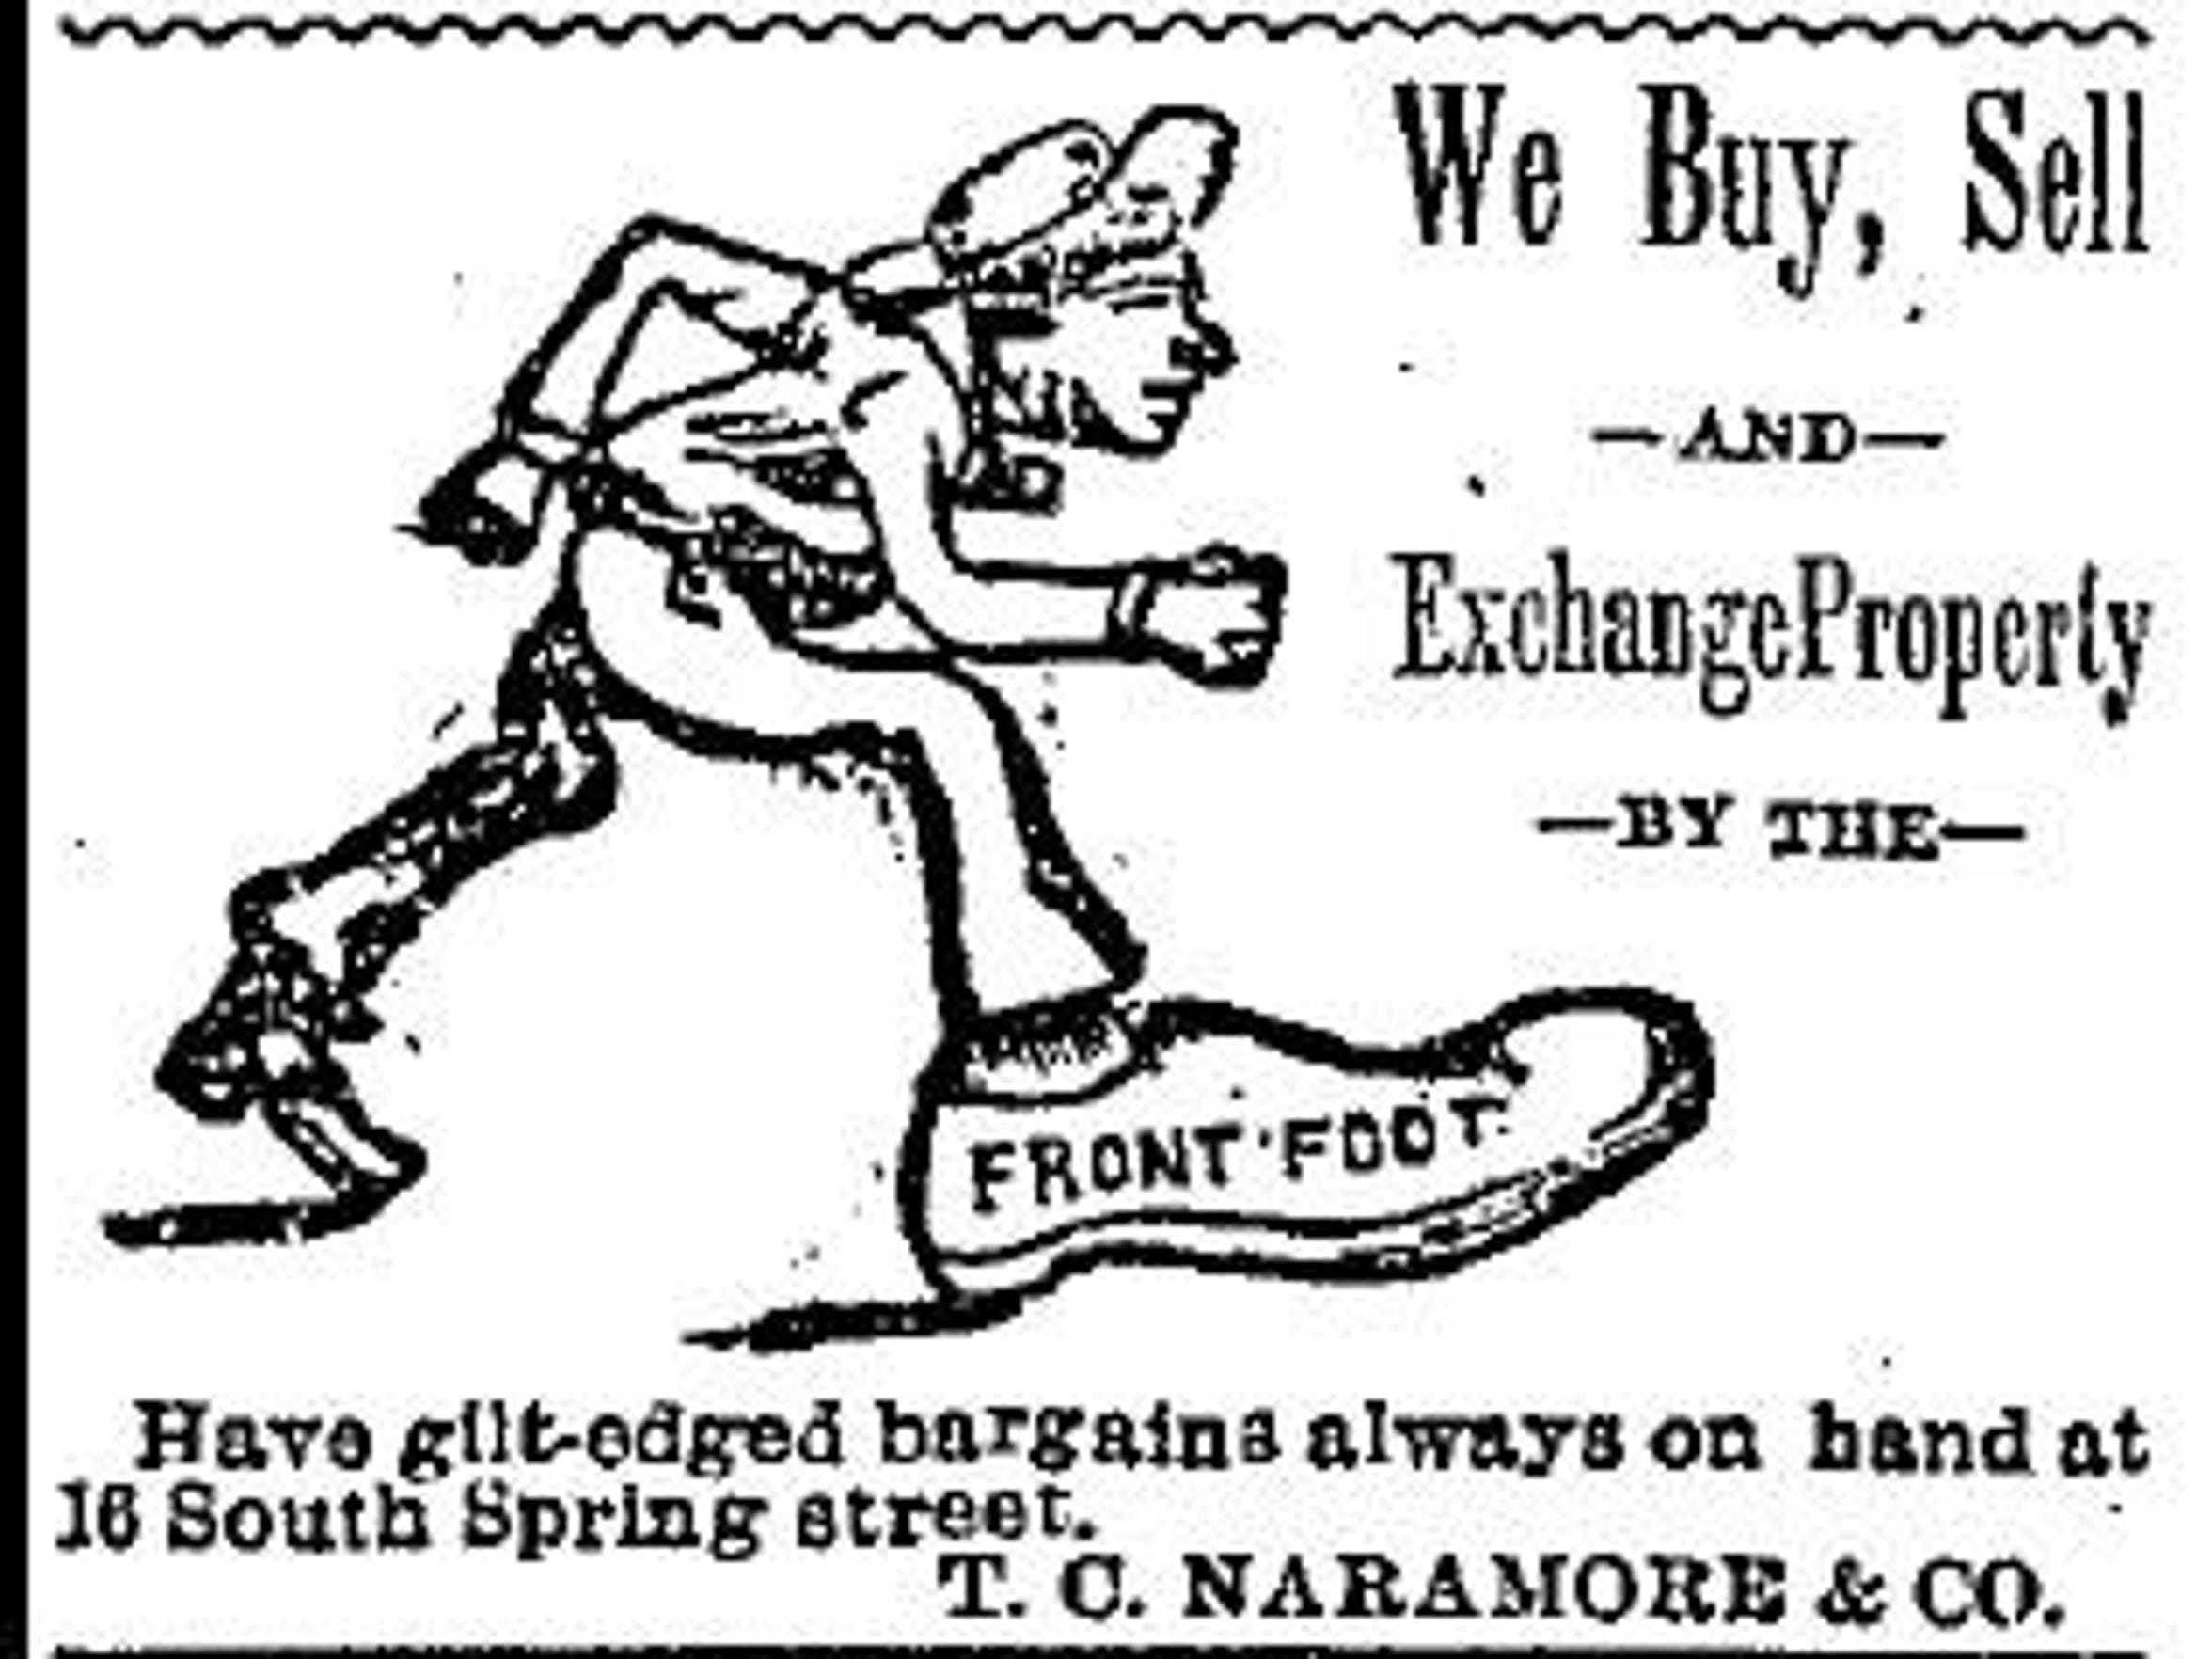 Newspaper ad for TC Naramore & Co